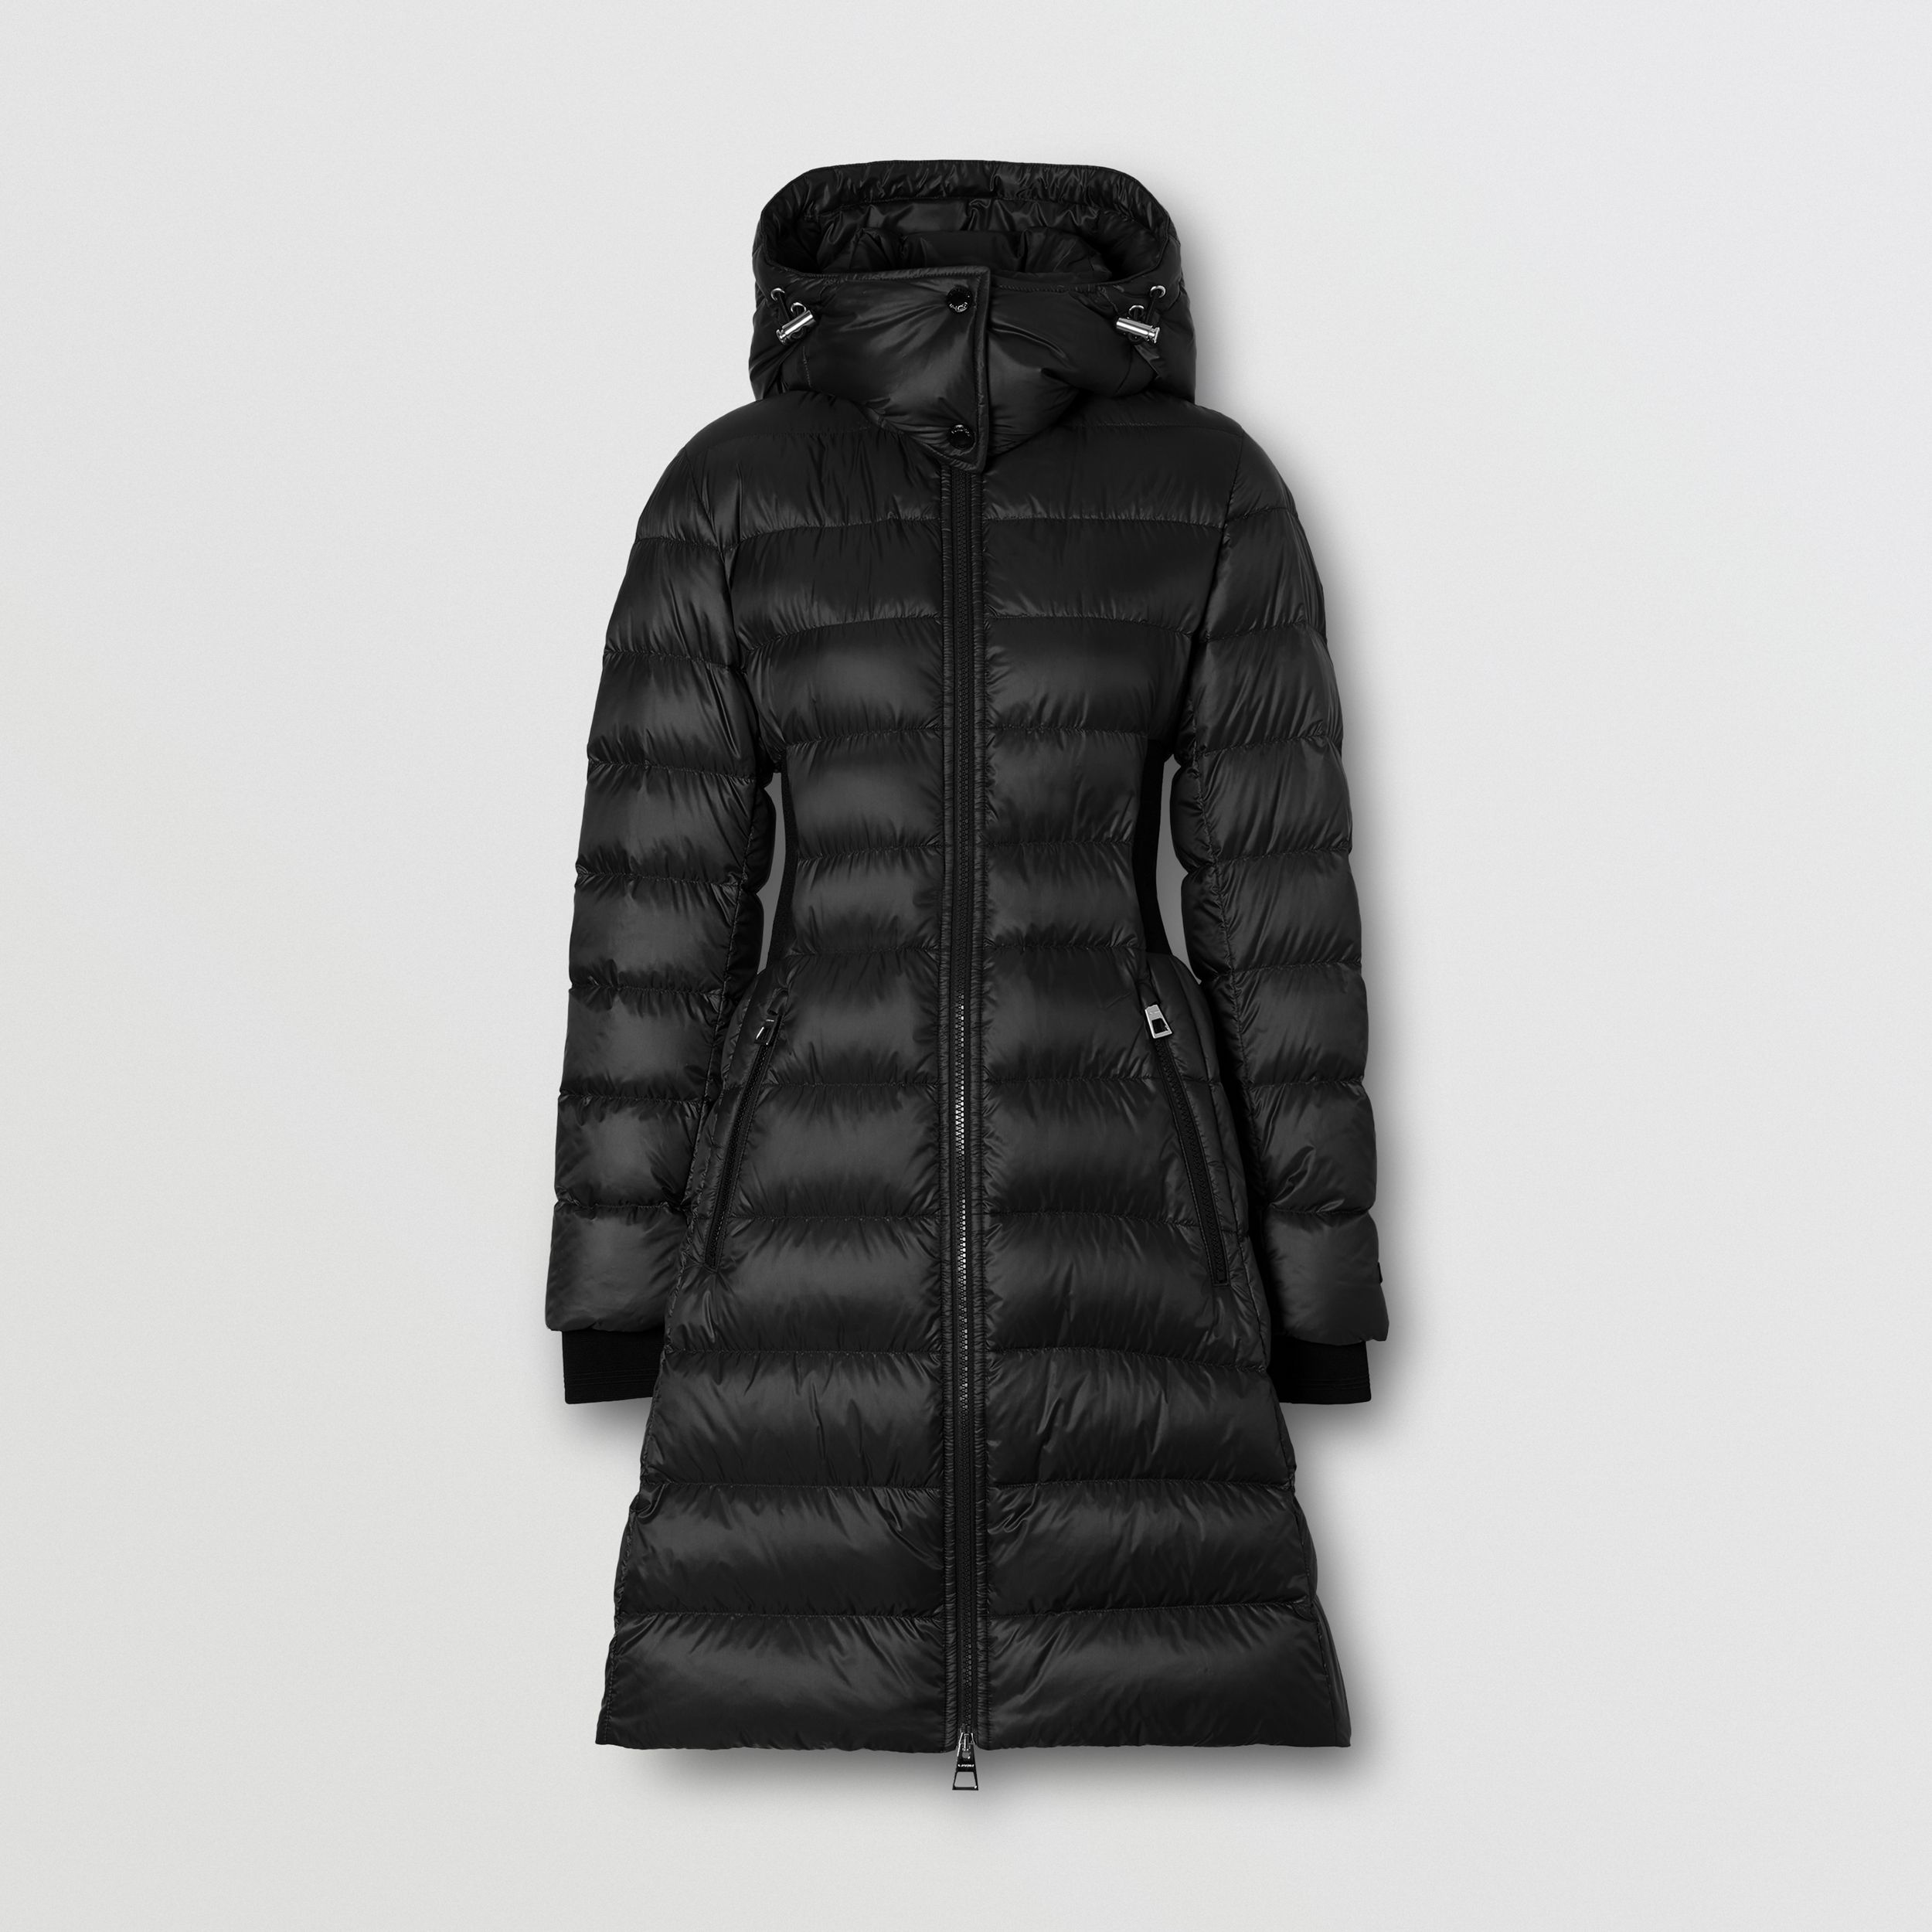 Detachable Hood Rib Knit Panel ECONYL® Puffer Coat in Black - Women | Burberry - 4